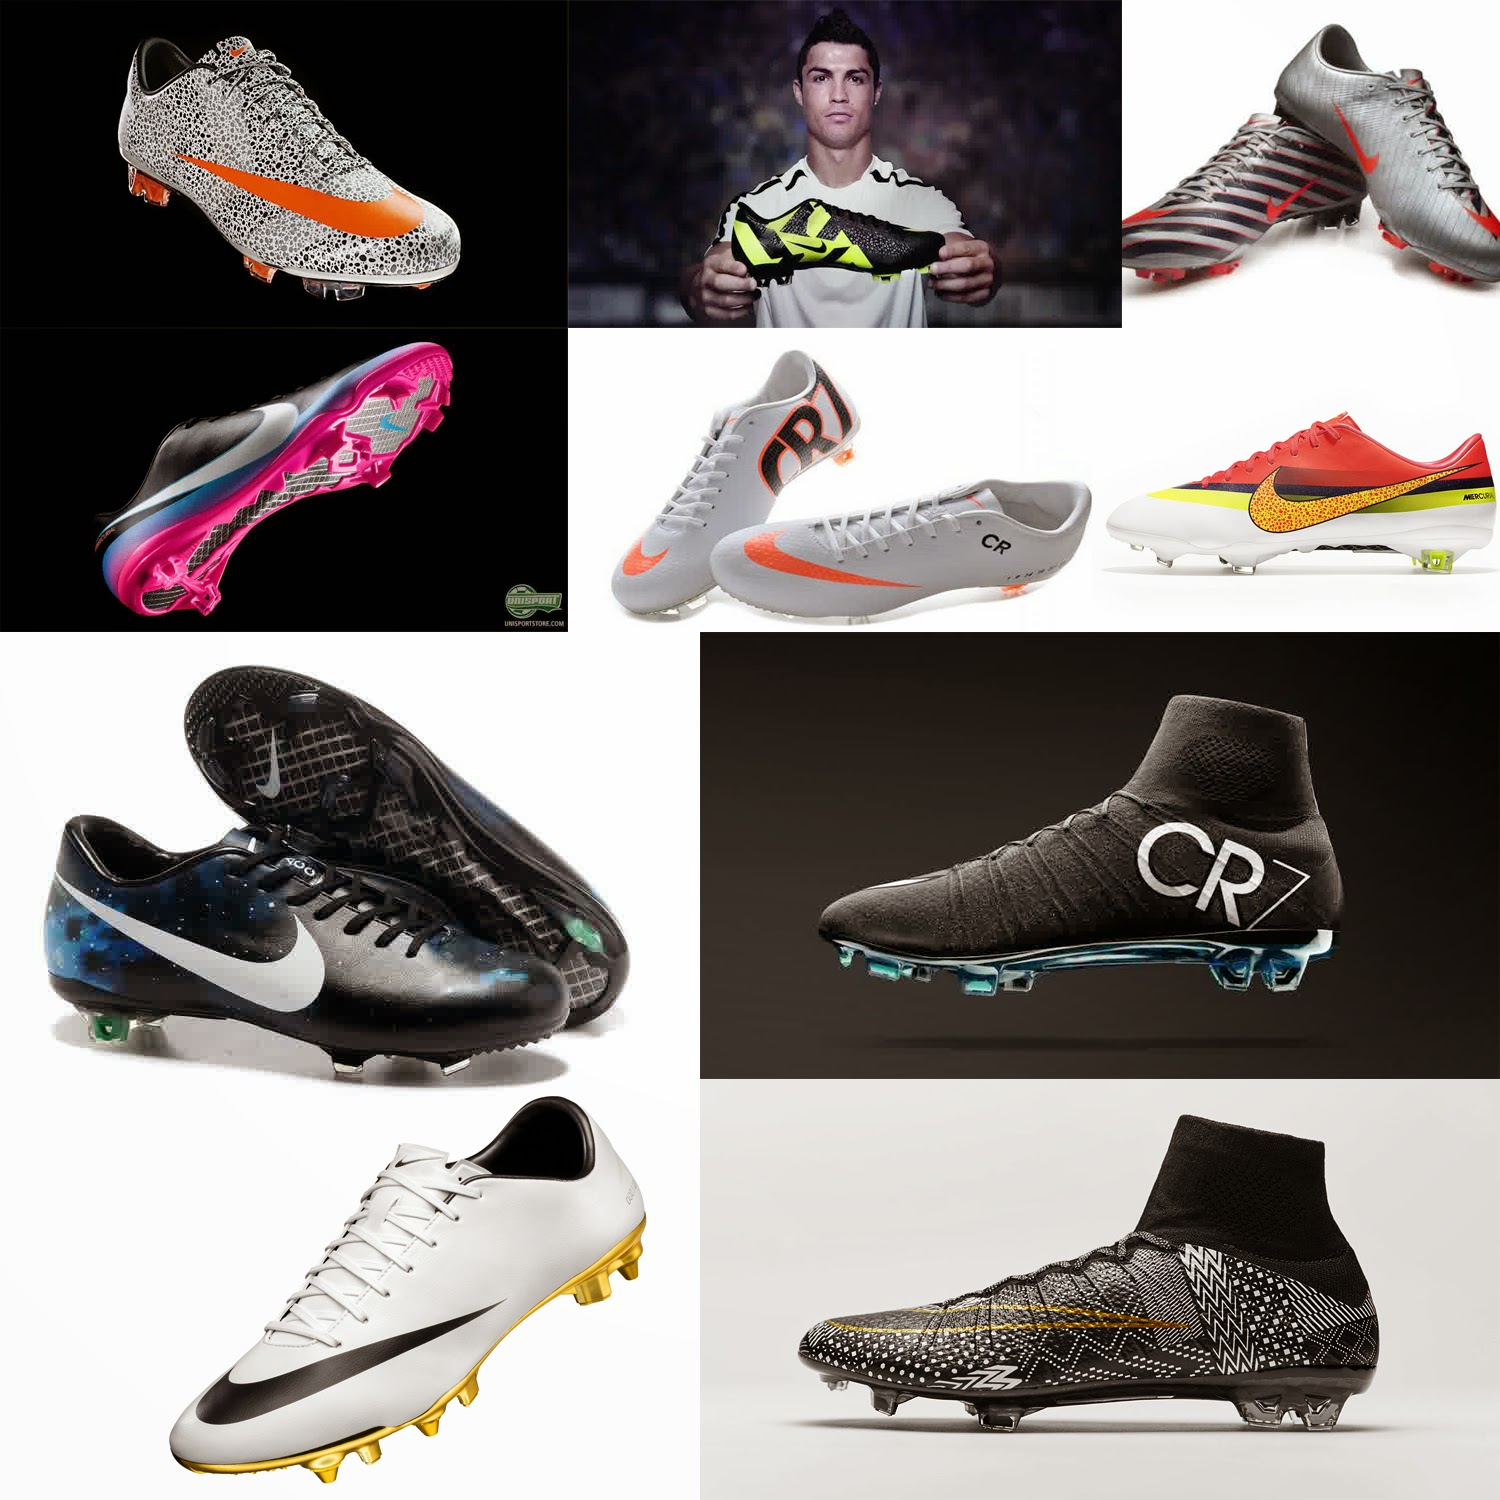 33cef53165 All Collection Nike CR7 Series From 2010 Until 2015